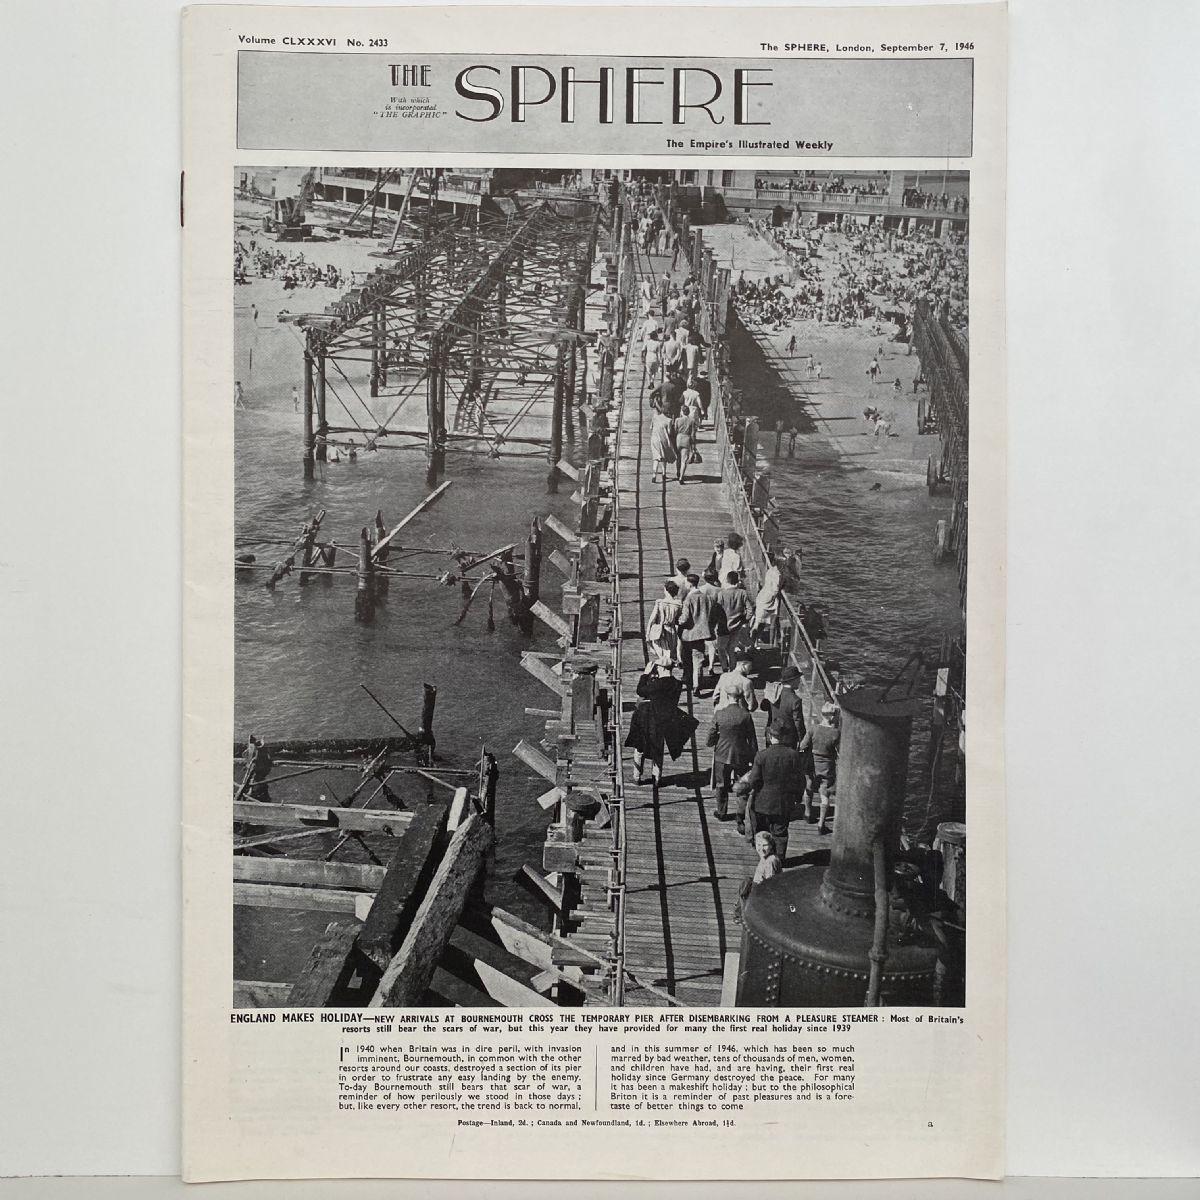 THE SPHERE The Empire's Illustrated Weekly. September 7, 1946. No.2433